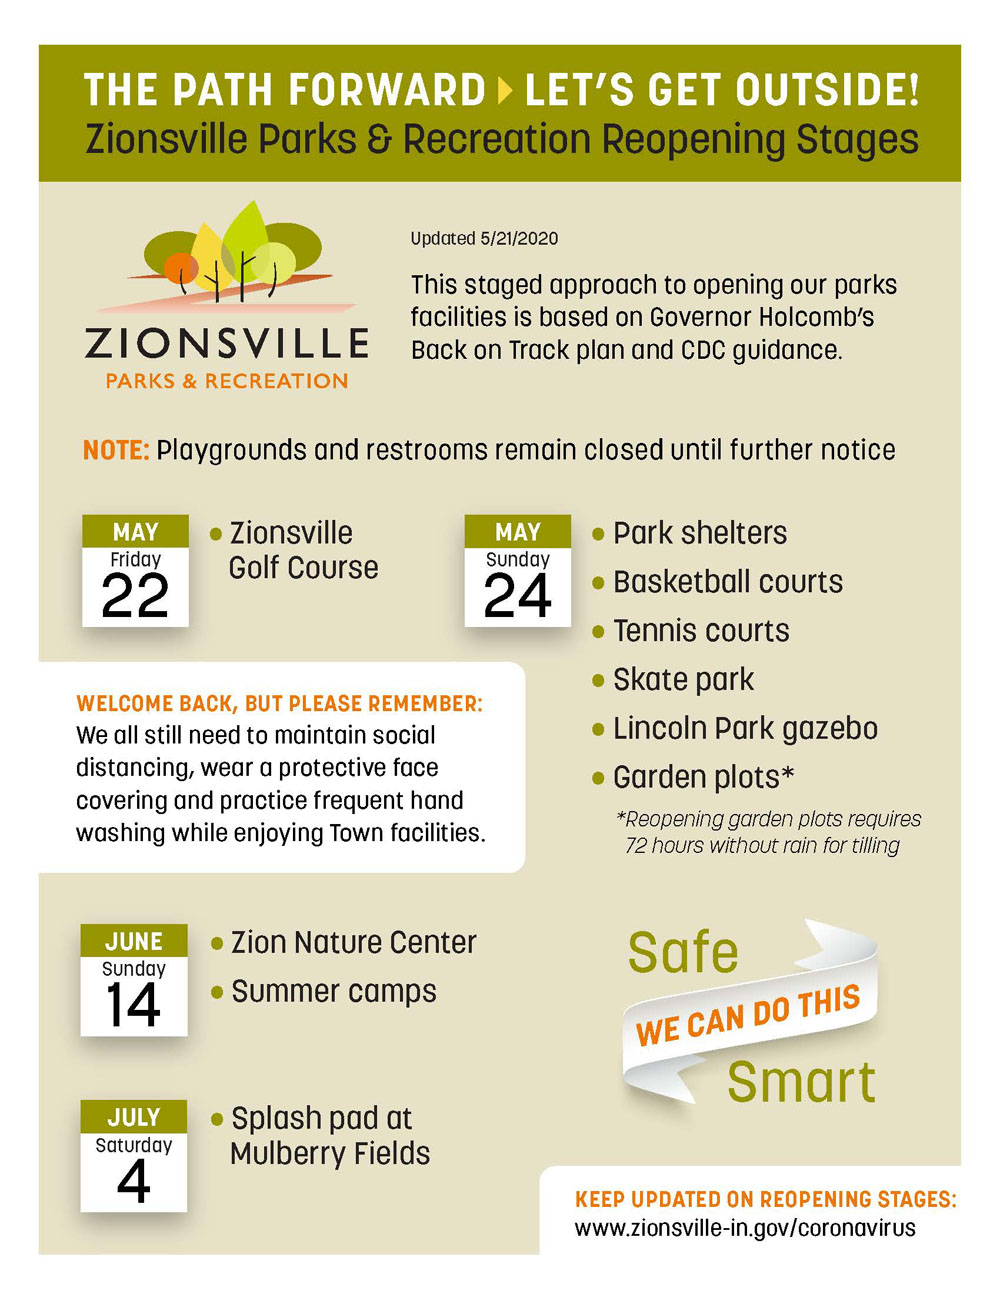 Be a Good Neighbor in Zionsville Parks & Zion Nature Center